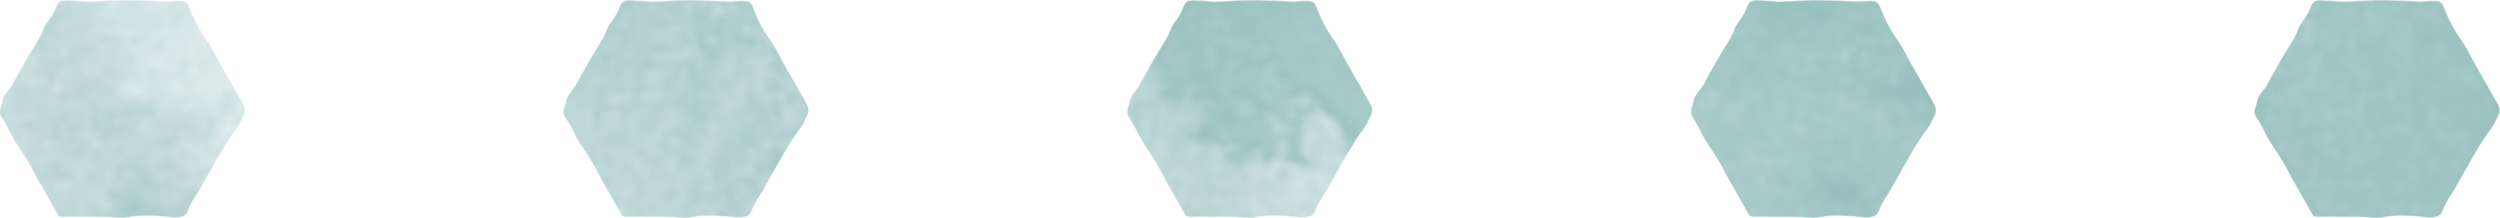 light-blue-water-color.png